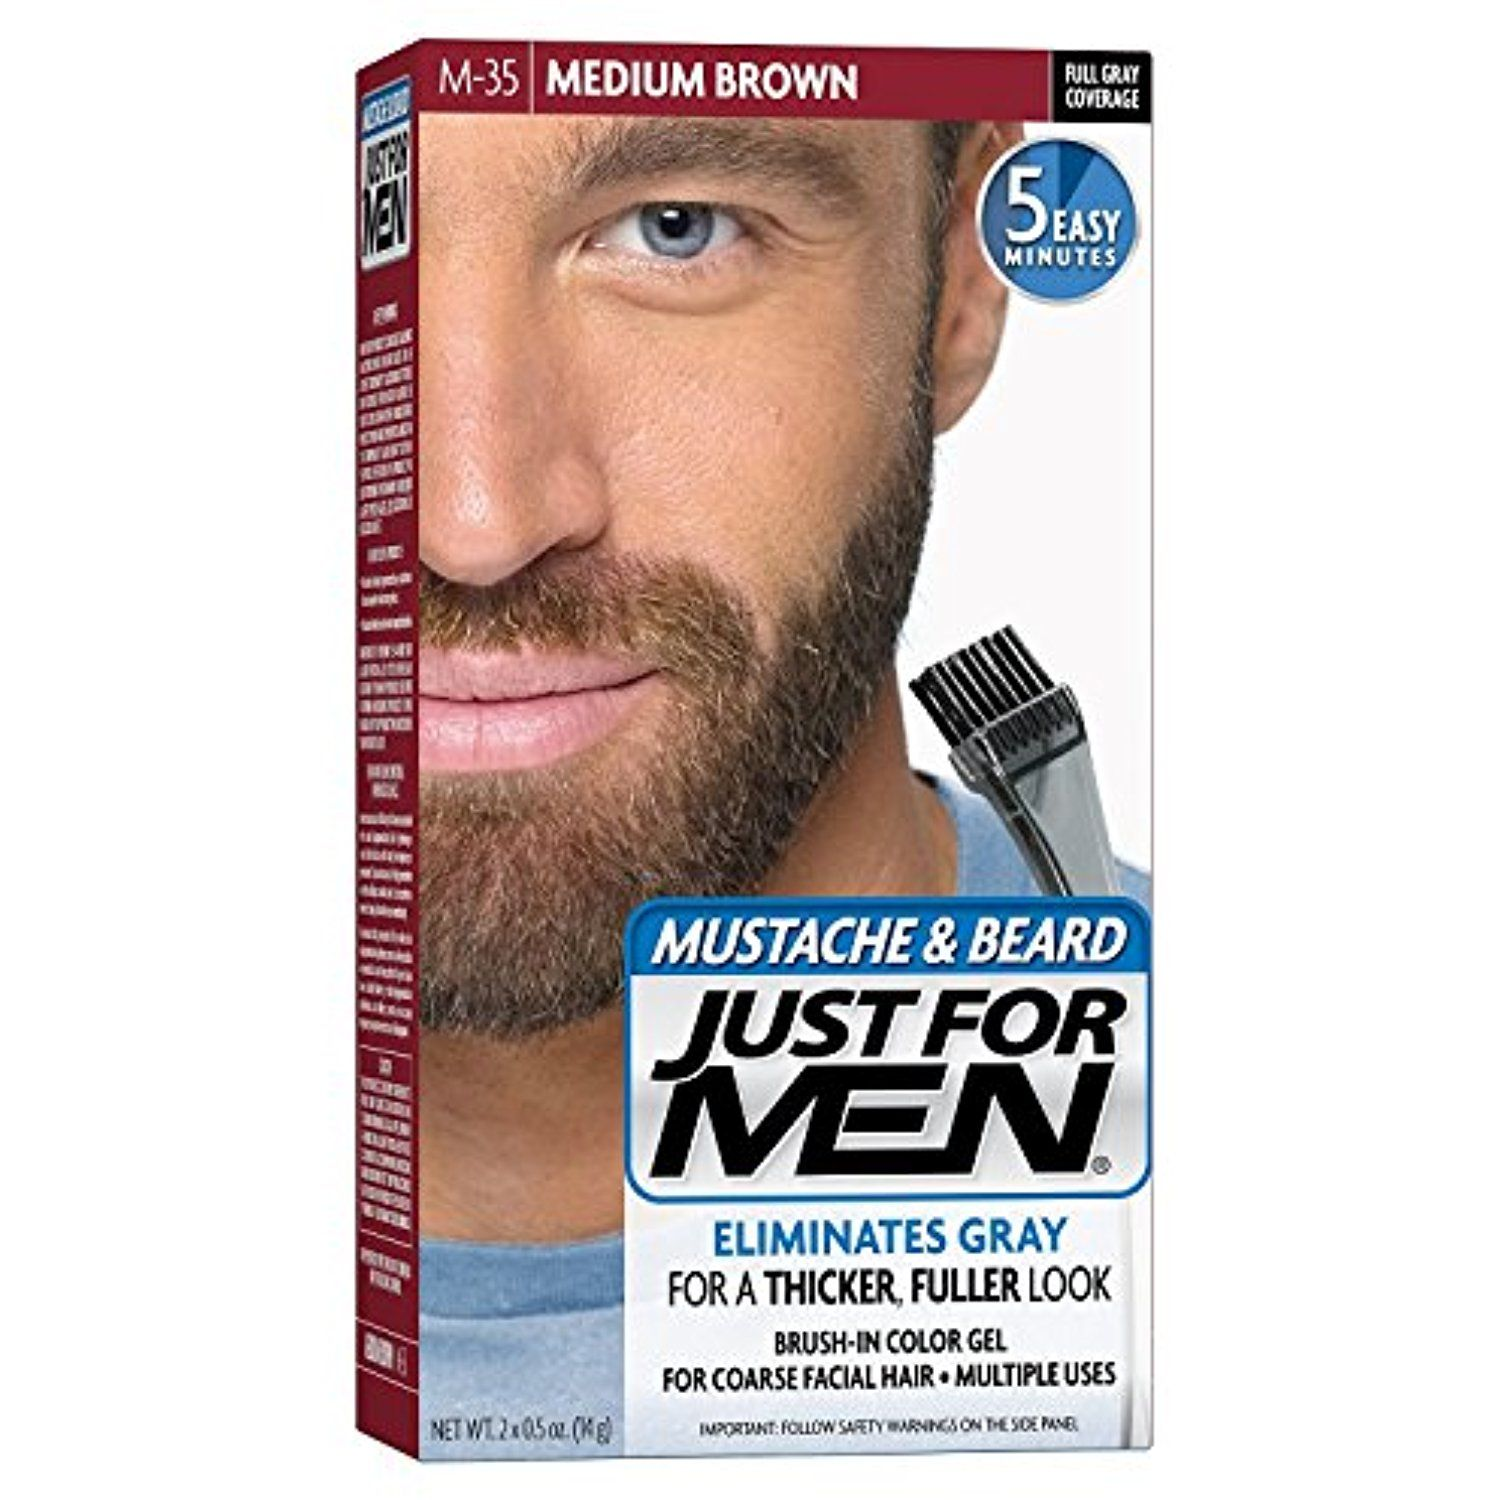 Just for men color brush for mustache and beard medium brown see